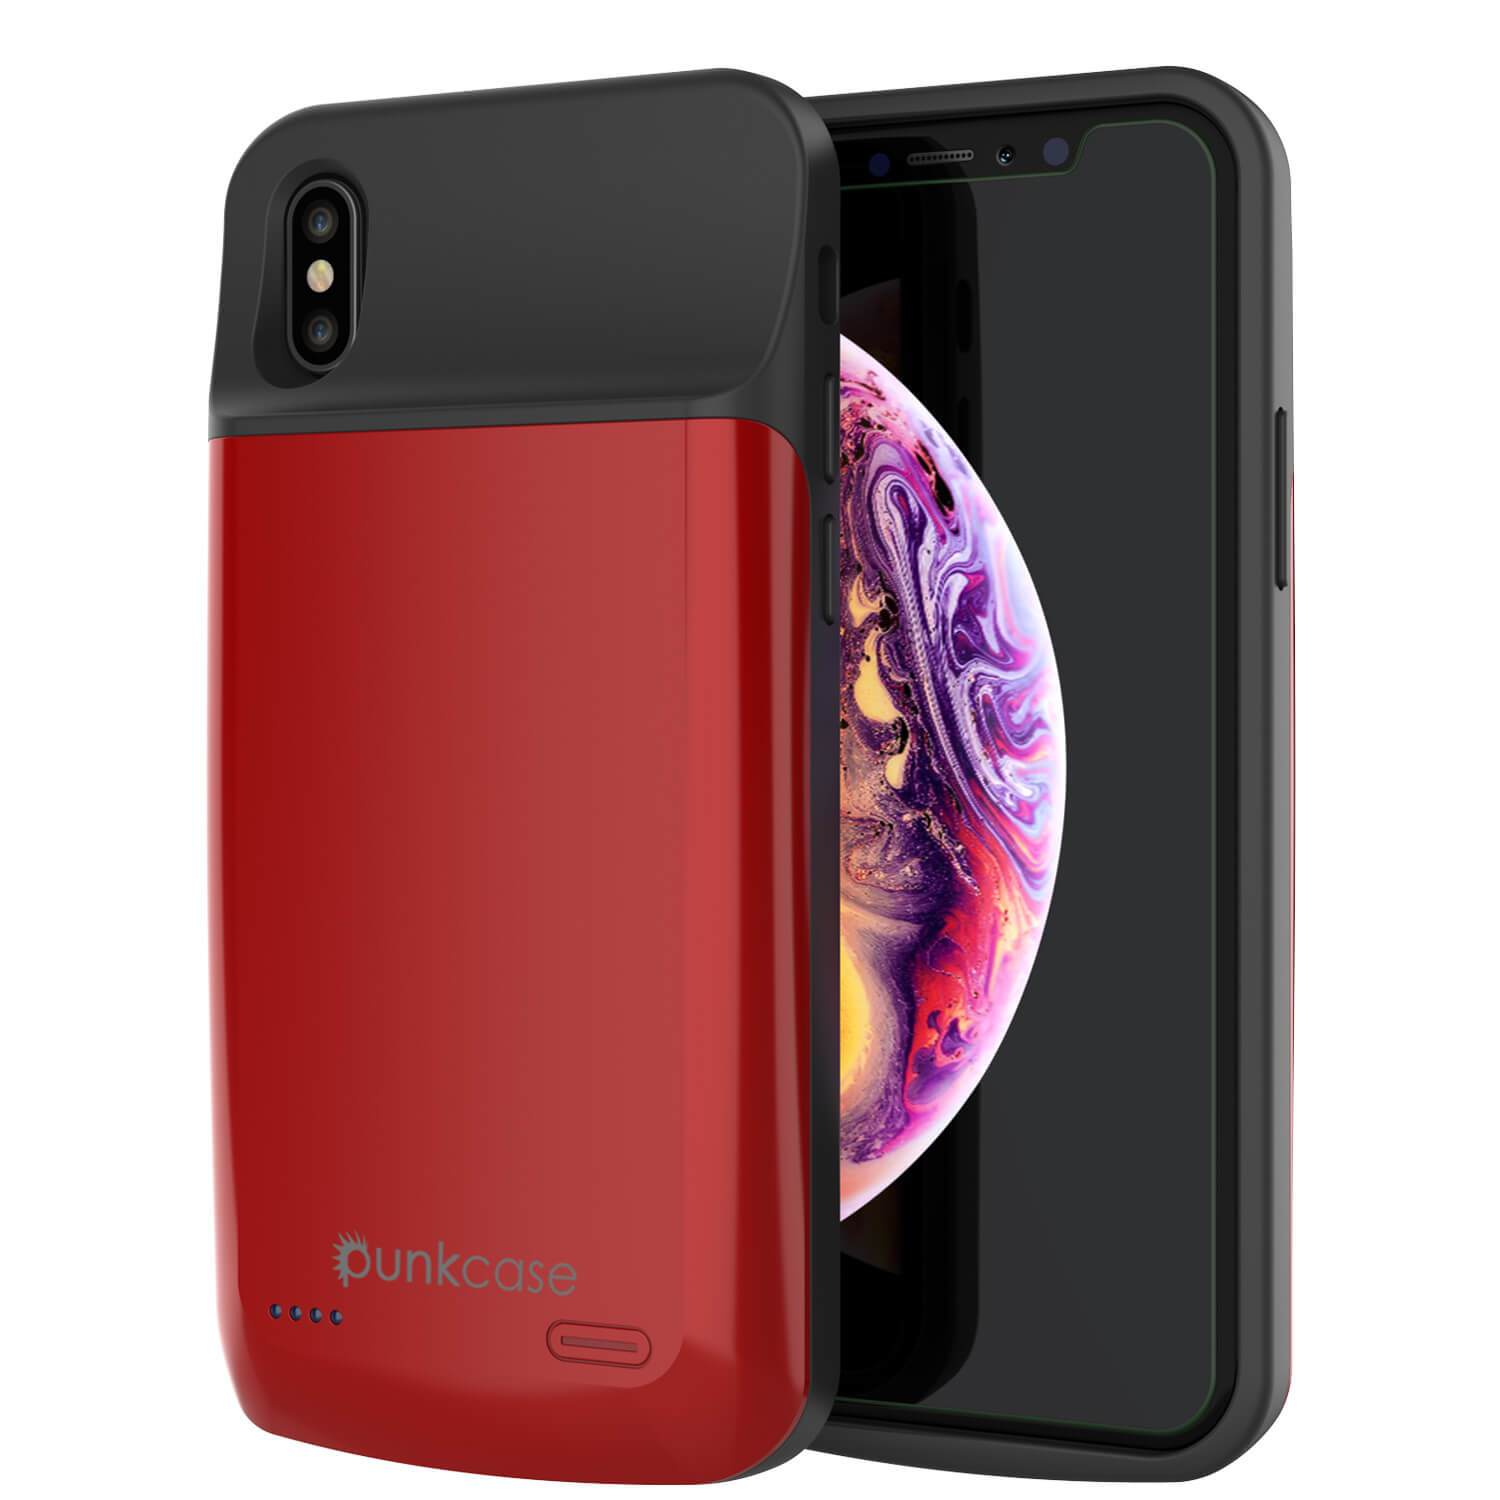 iphone XS Max Battery Case, PunkJuice 5000mAH Fast Charging Power Bank W/ Screen Protector | [Red]